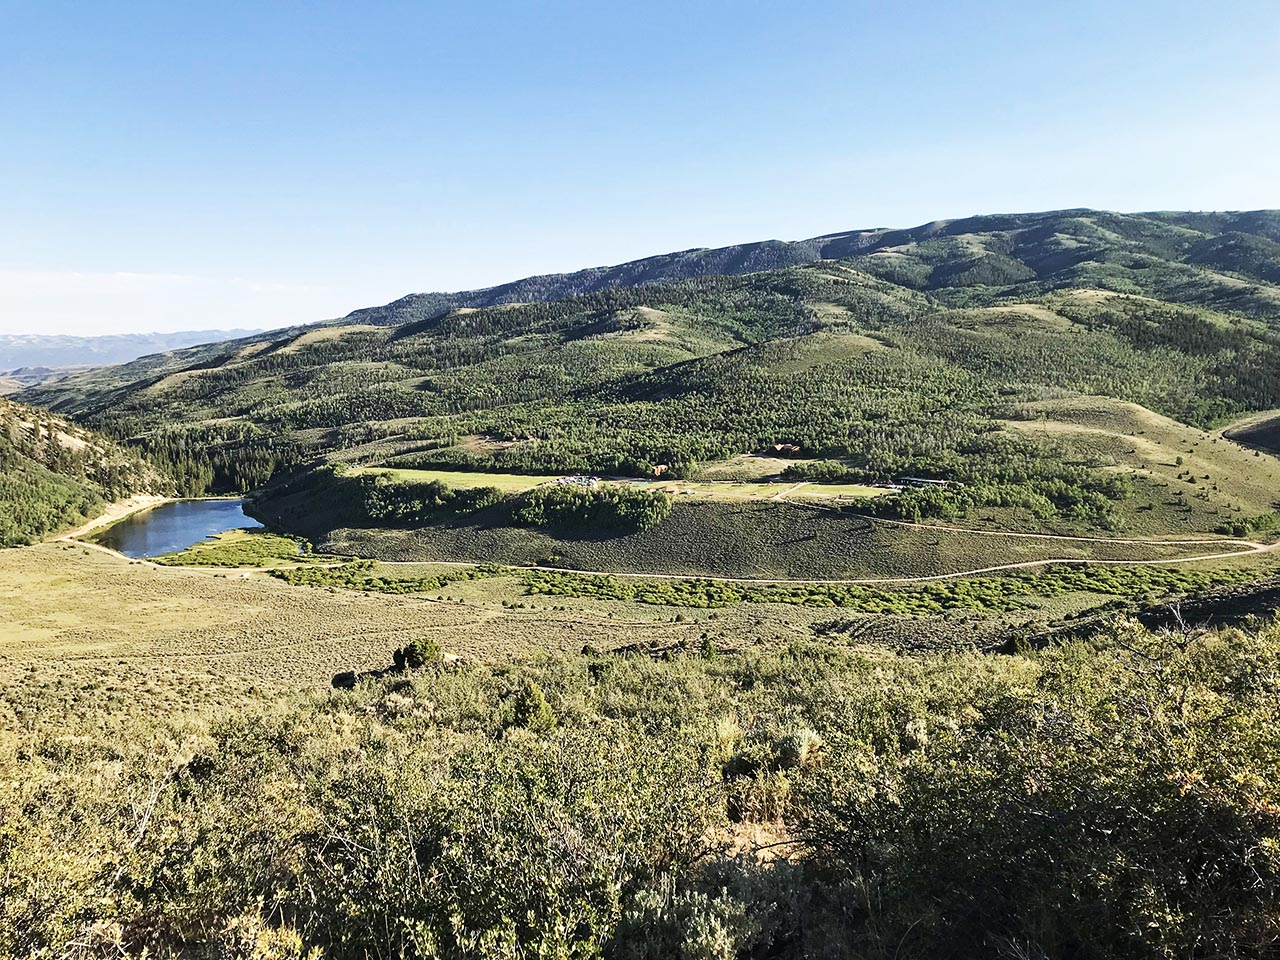 Middle part of a panoramic view of Reid Ranch as seen from the Mountain Hike. The lake is visible to the left with the conference center on the plateau to the right.